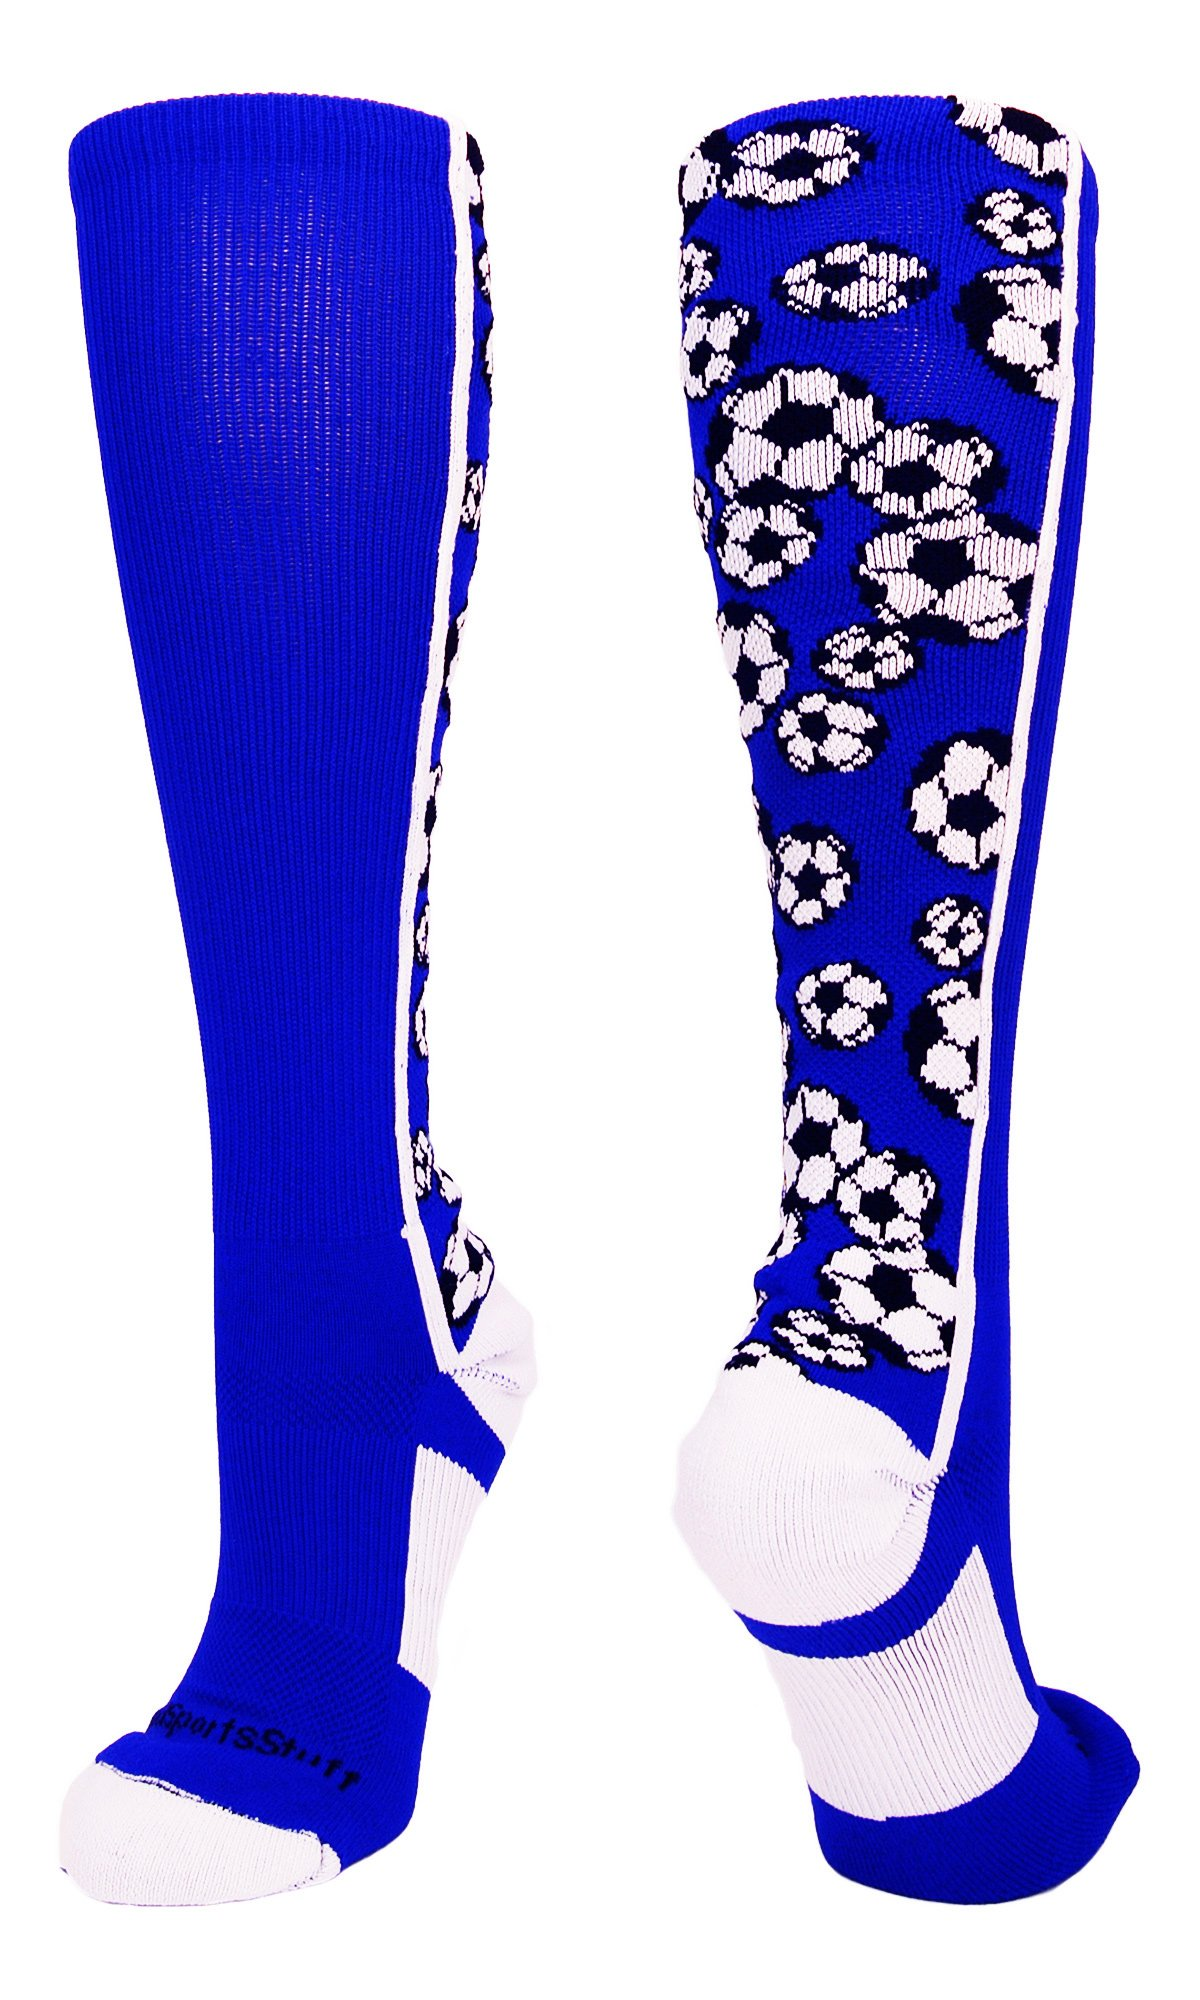 MadSportsStuff Crazy Soccer Socks with Soccer Balls Over The Calf (Royal/White, Small) by MadSportsStuff